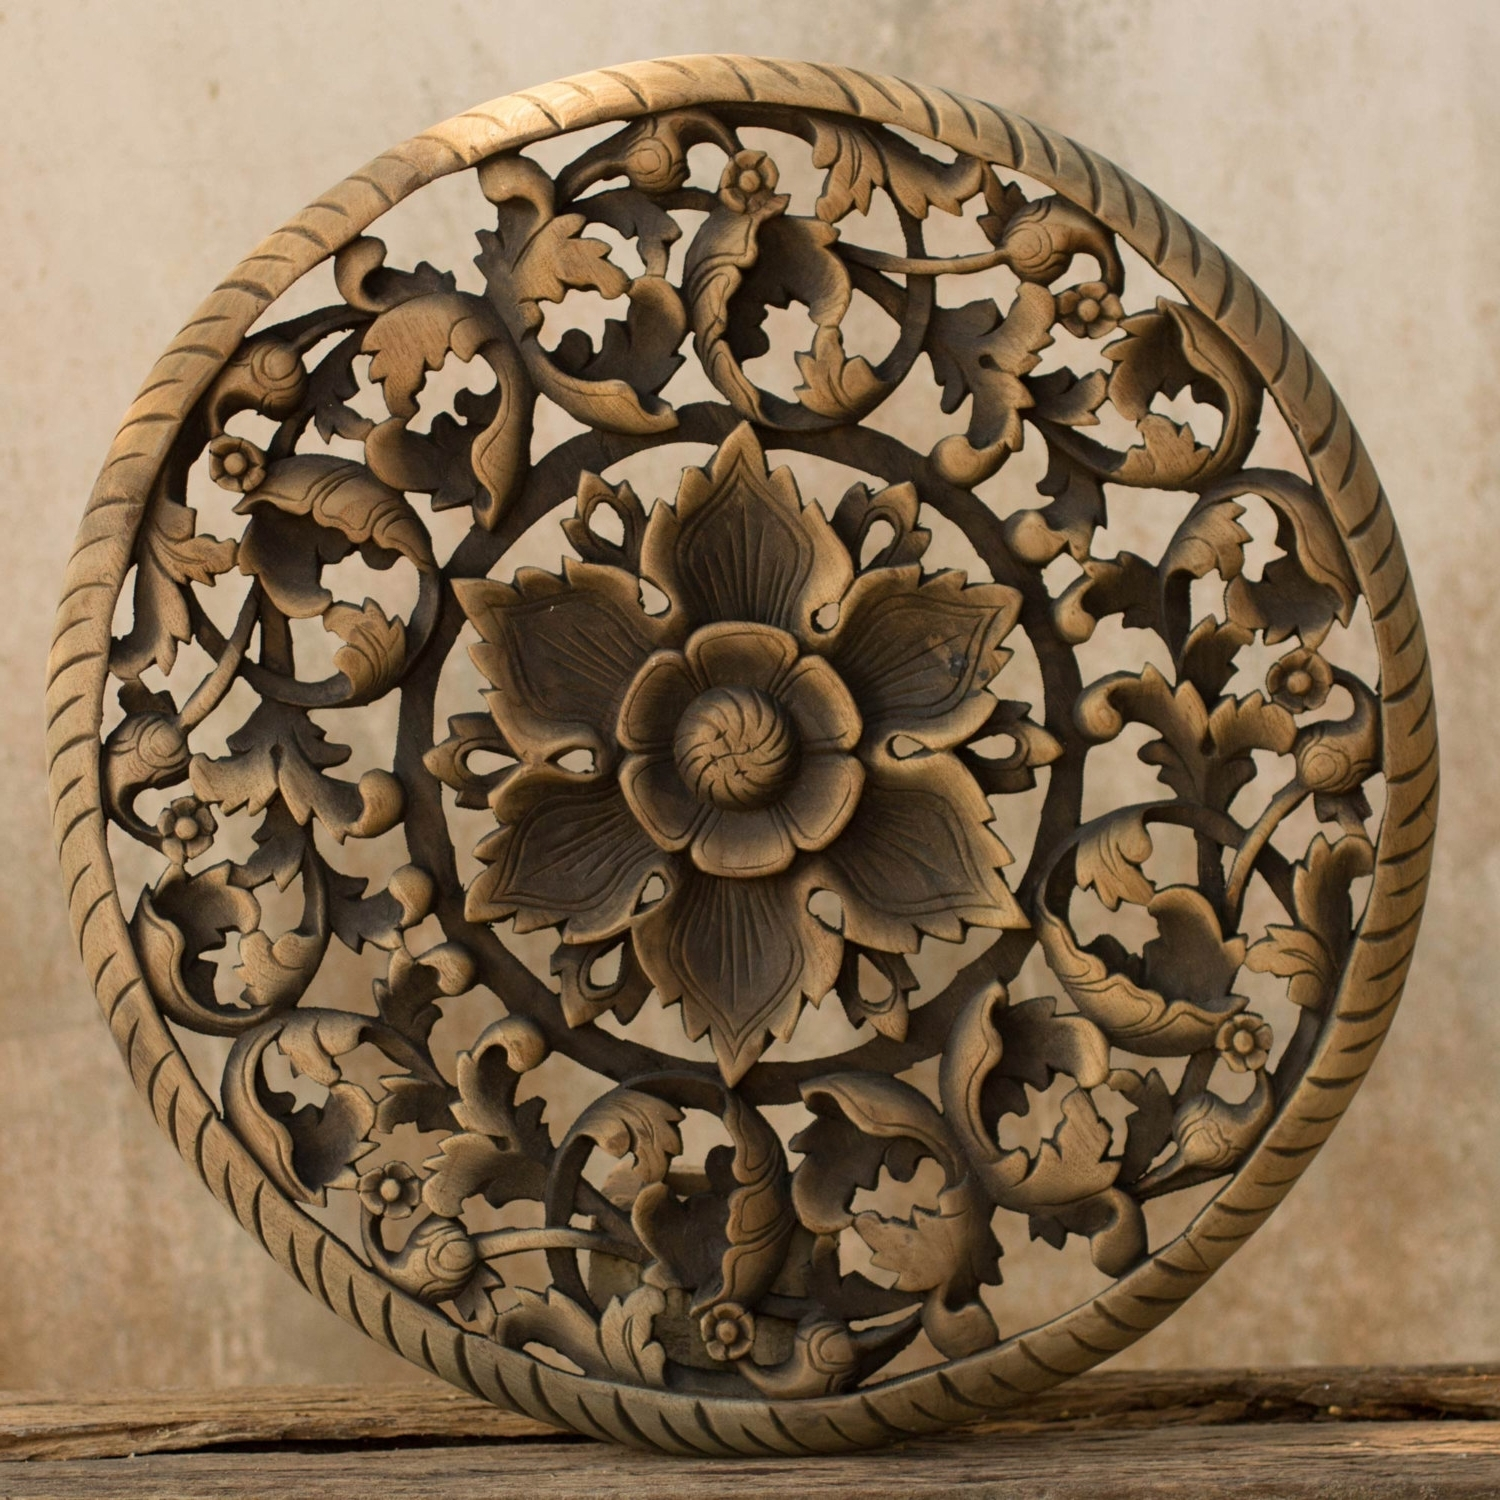 Wood Carved Wall Art Regarding Well Known Buy Tree Dimensional Floral Wooden Wall Hanging Online (View 13 of 15)